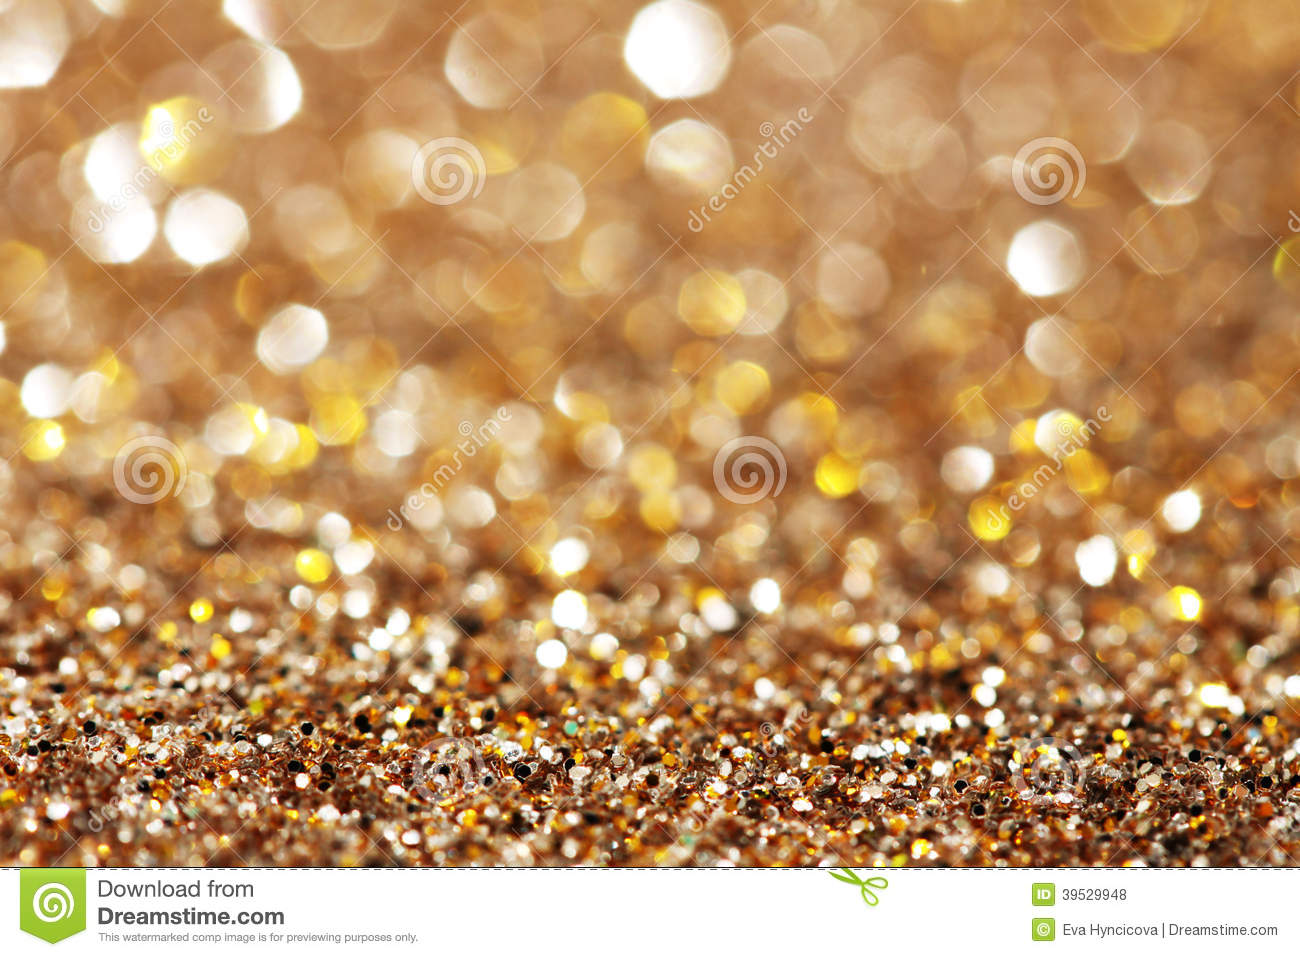 Gold and silver sparkle background